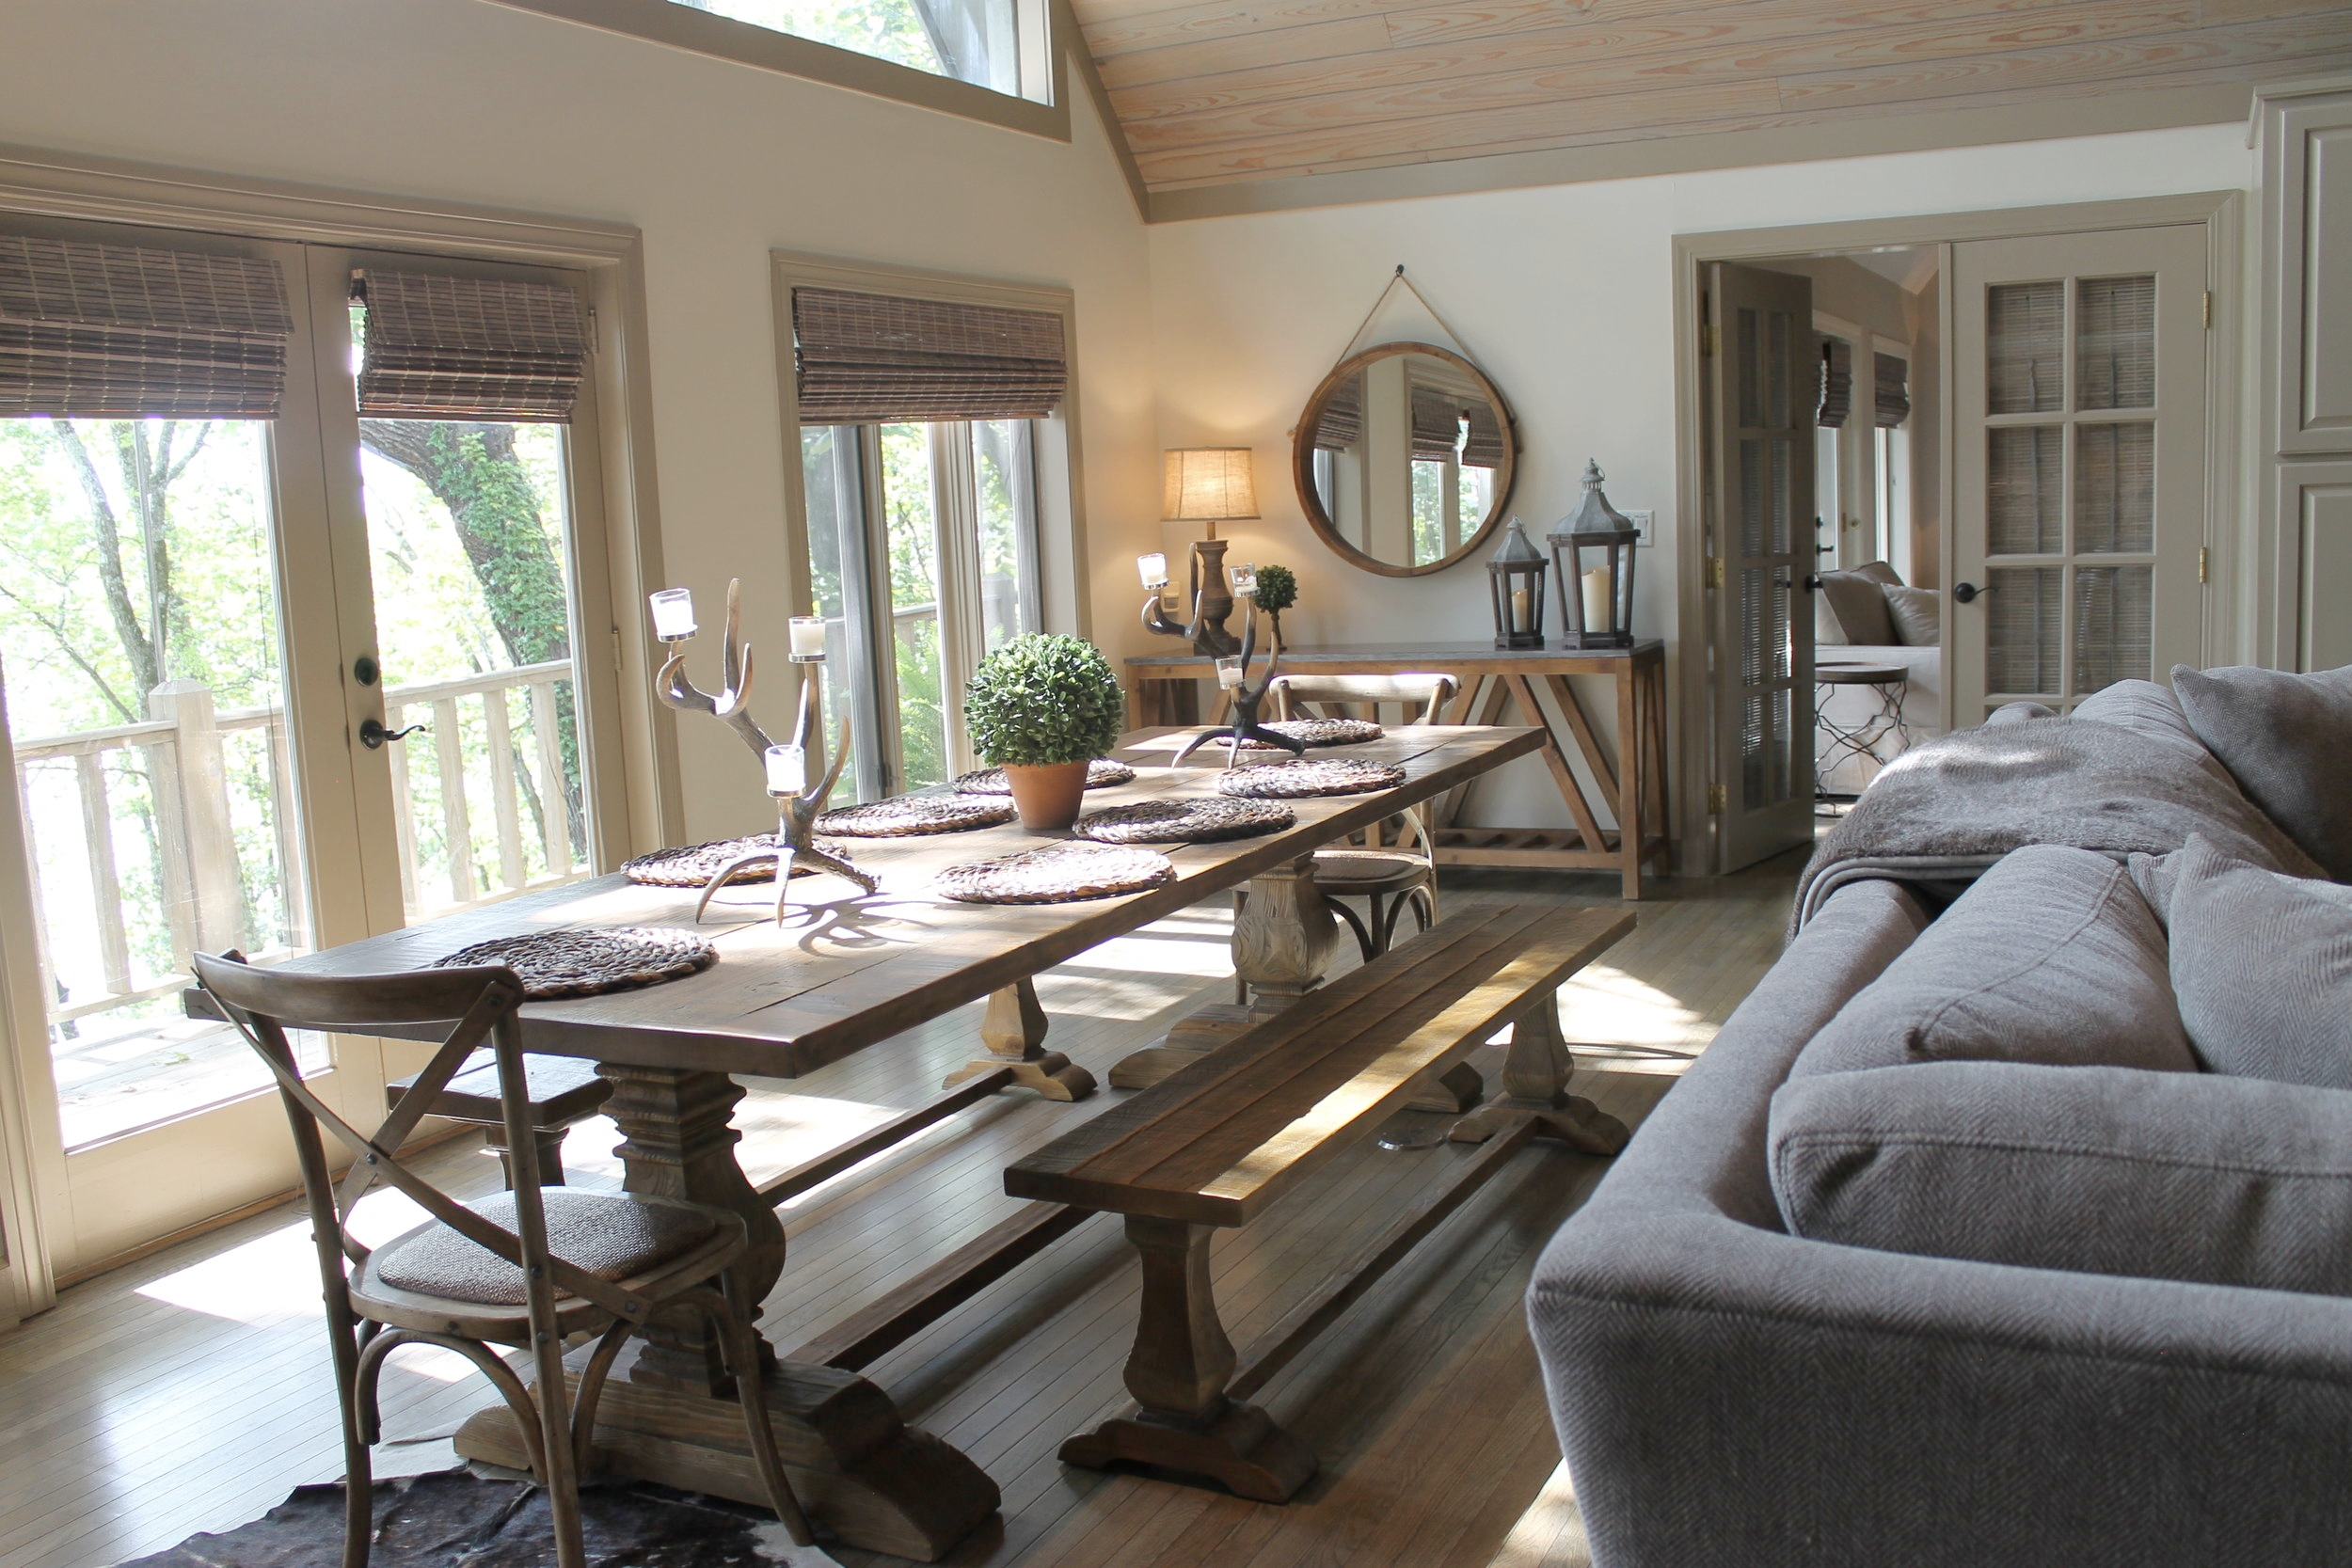 Prime Design Memphis, LLC - Arkansas Lake House, Living & Dining, White Walls, Taupe Trim, Sectional, Farm Table, Rustic Wood Ceiling